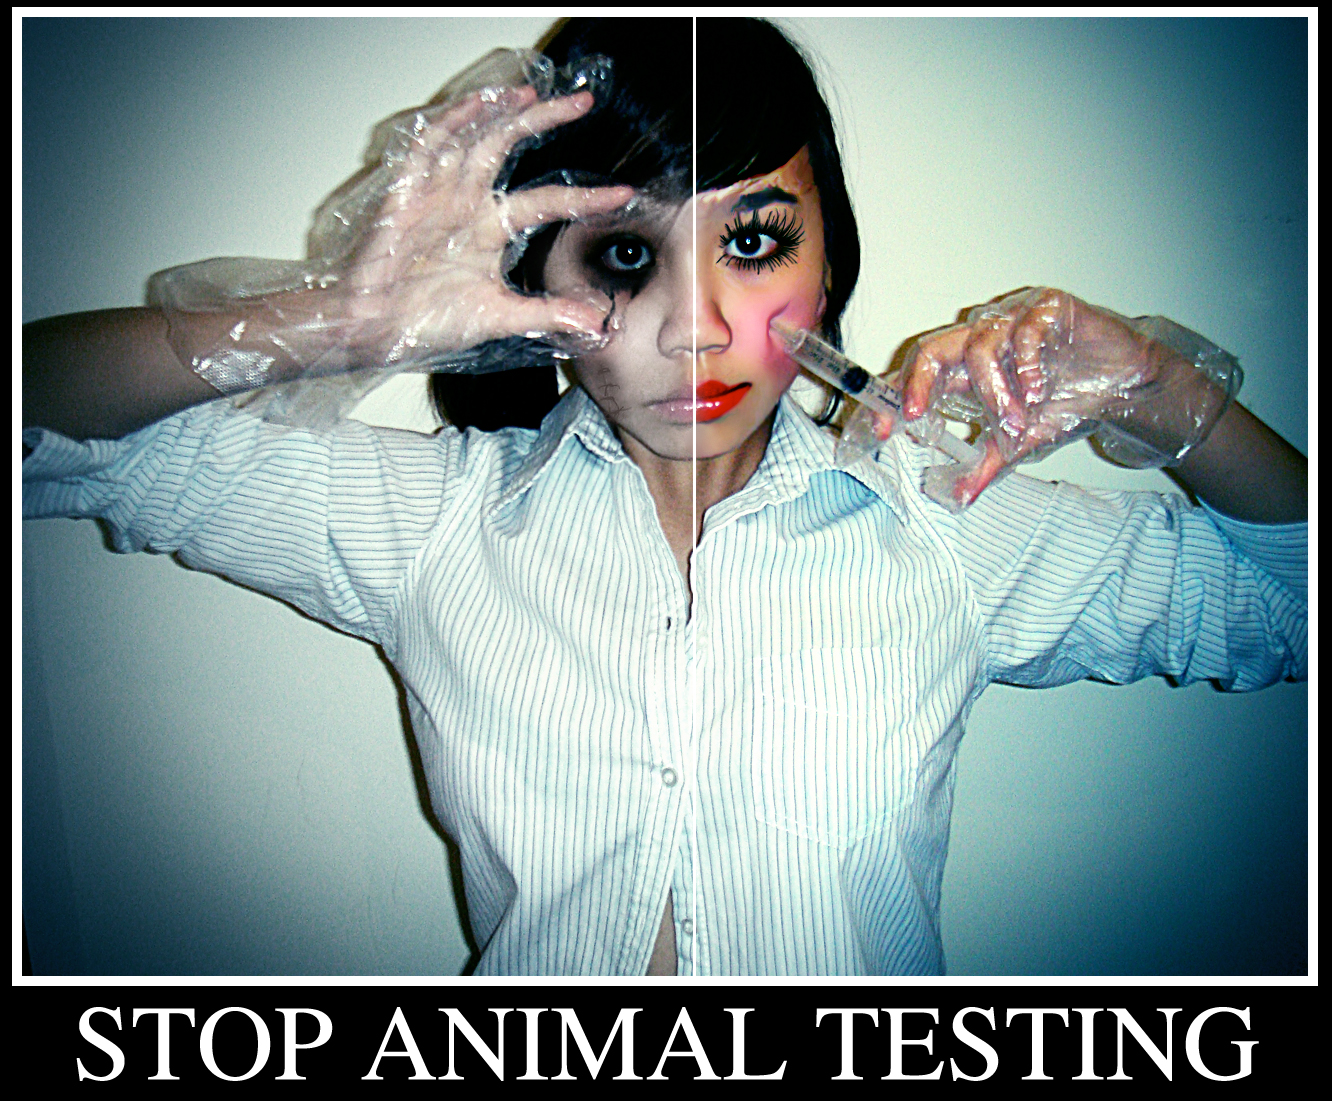 cruelty to animals research paper Read this essay on animal cruelty come browse our large digital warehouse of free sample essays get the knowledge you need in order to pass your classes as a result, the animal-based research and testing methods continue to fail legitimate human needs, while new discoveries in the field of.